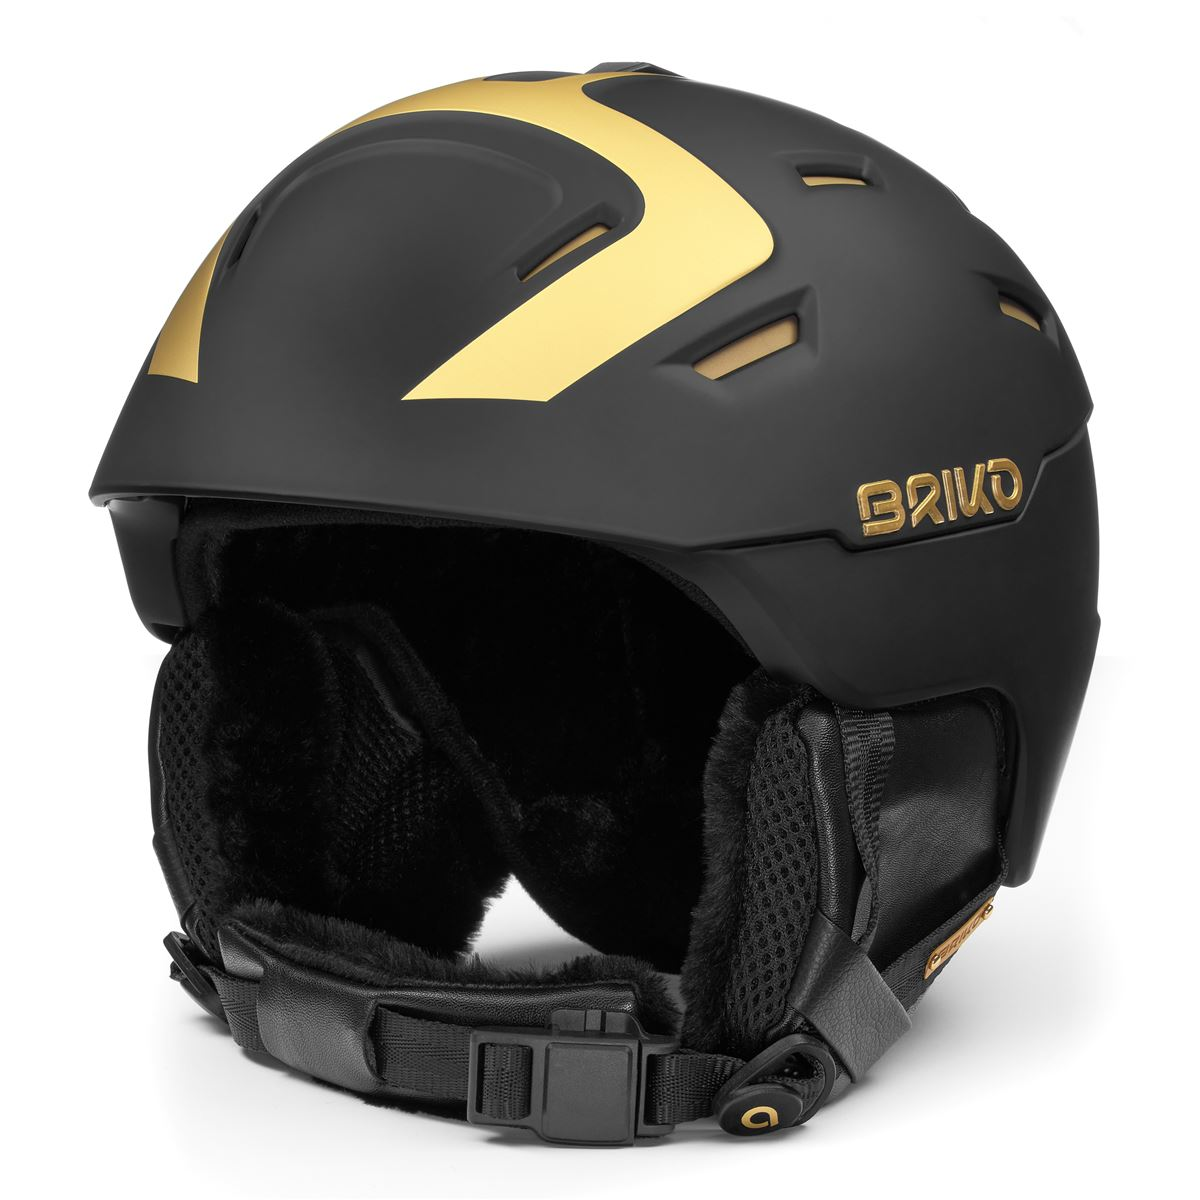 Helmets Briko for woman-221141WLNN